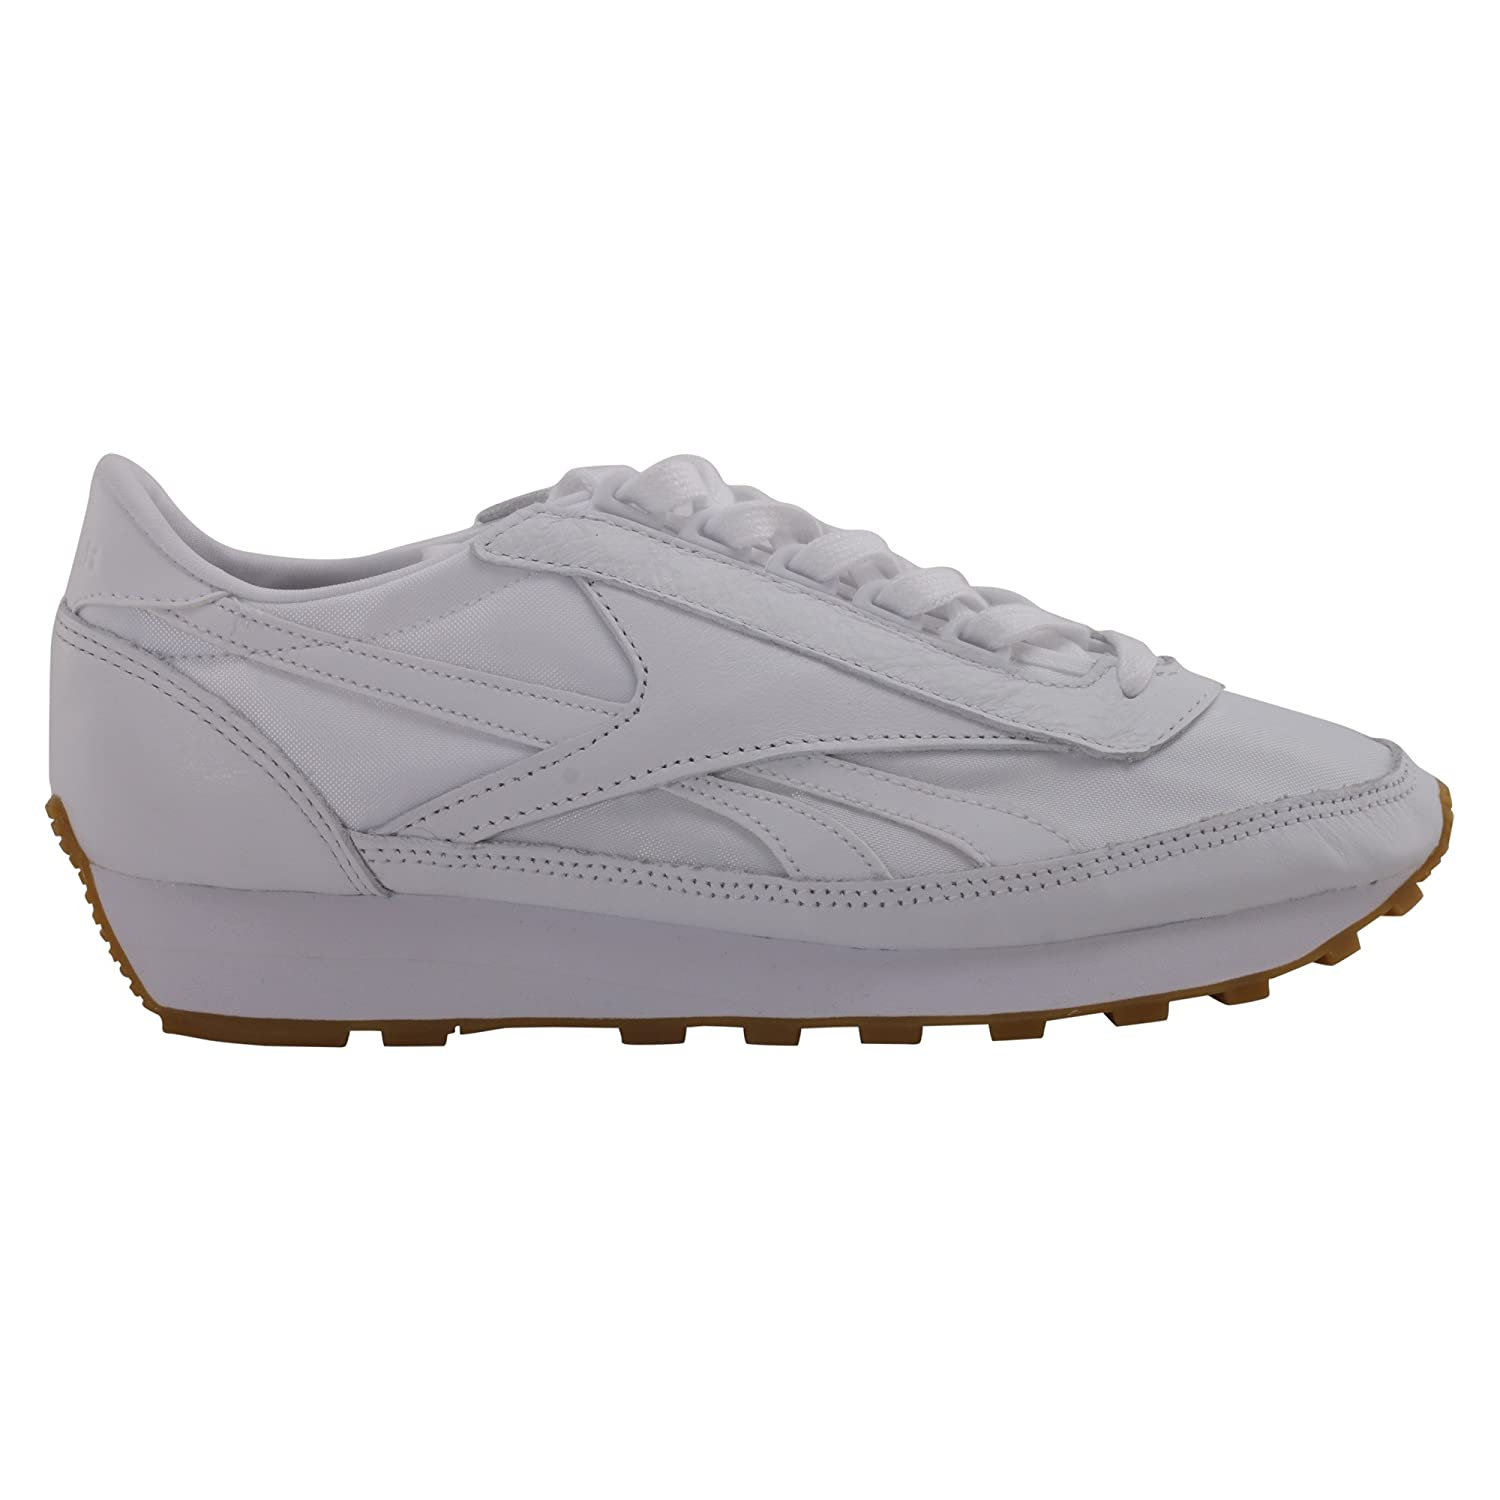 Zapatilla Reebok Aztec Garment And Gum Blanca 5|Blanco